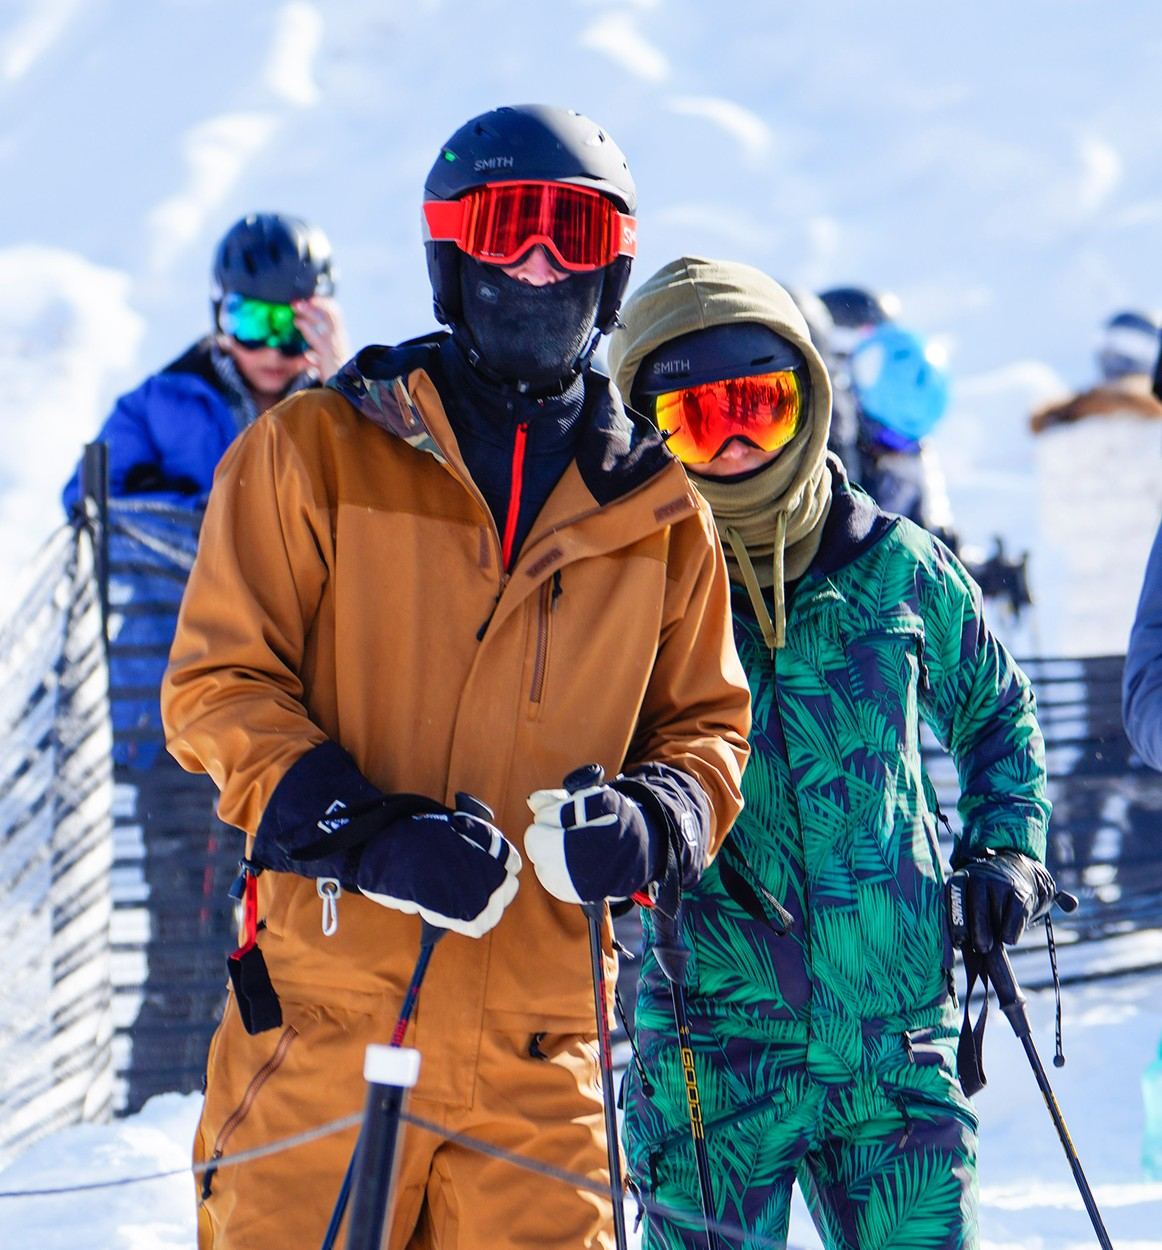 12/29/2019 EXCLUSIVE: Kate Hudson and Danny Fujikawa hit the slopes in Aspen, Colorado. The couple wore matching black helmets and goggles with Kate sporting a patterned ski suit while Danny opted for a solid brown outfit., Image: 490292884, License: Rights-managed, Restrictions: Exclusive NO usage without agreed price and terms. Please contact sales@theimagedirect.com, Model Release: no, Credit line: TheImageDirect.com / The Image Direct / Profimedia